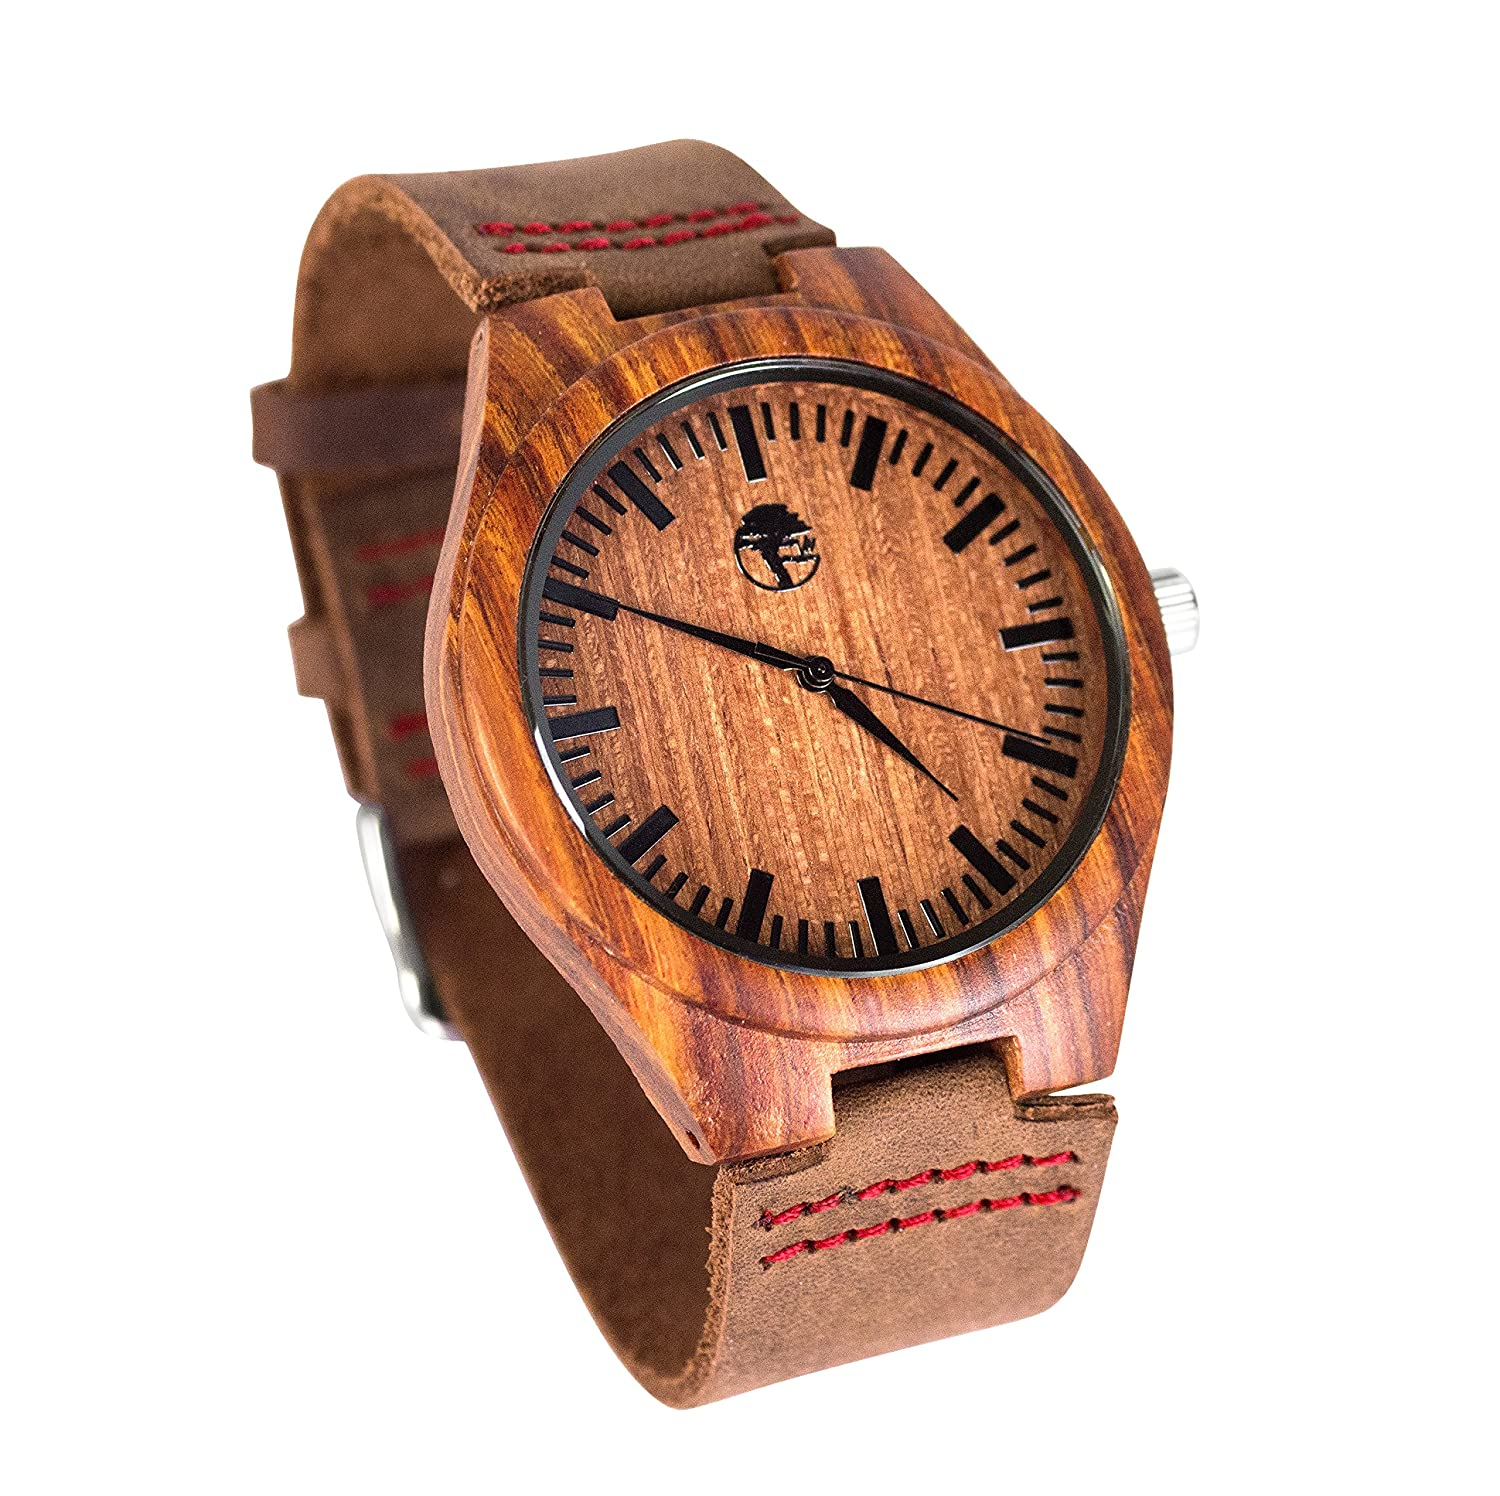 twitter wewood watches wood wewoodwatch retweets replies true likes